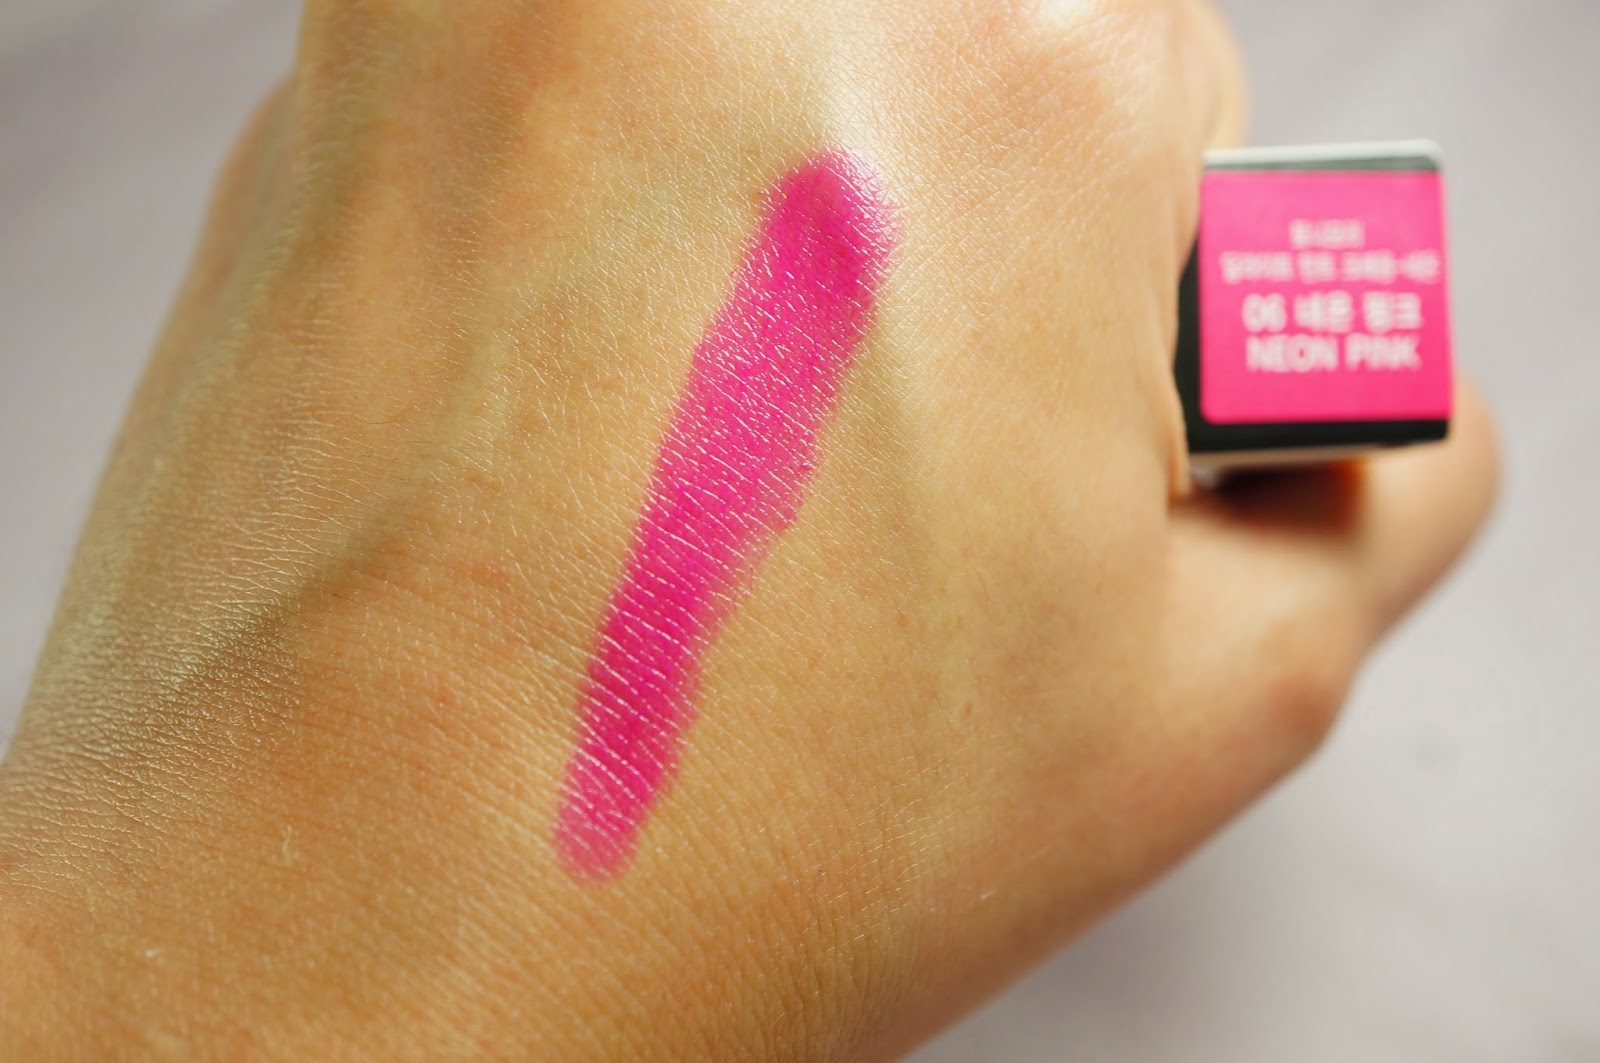 Memebox Special #42 OMG Unboxing Review Tonymoly Delight Tint Crayon 06 Neon Pink Blacklight Glow in the Dark